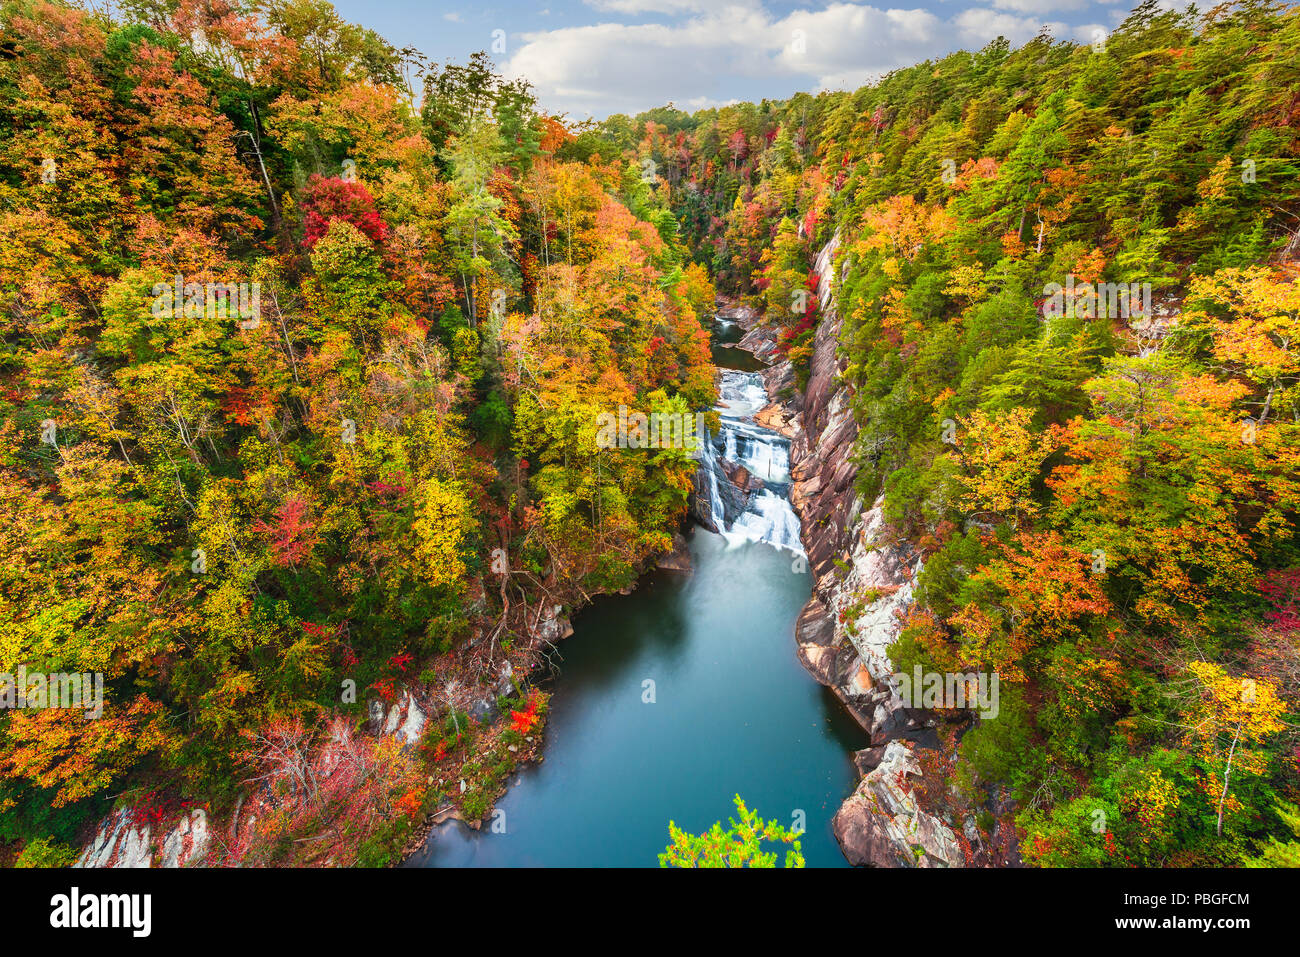 Tallulah Falls, Georgia, USA overlooking Tallulah Gorge in the autumn season. - Stock Image